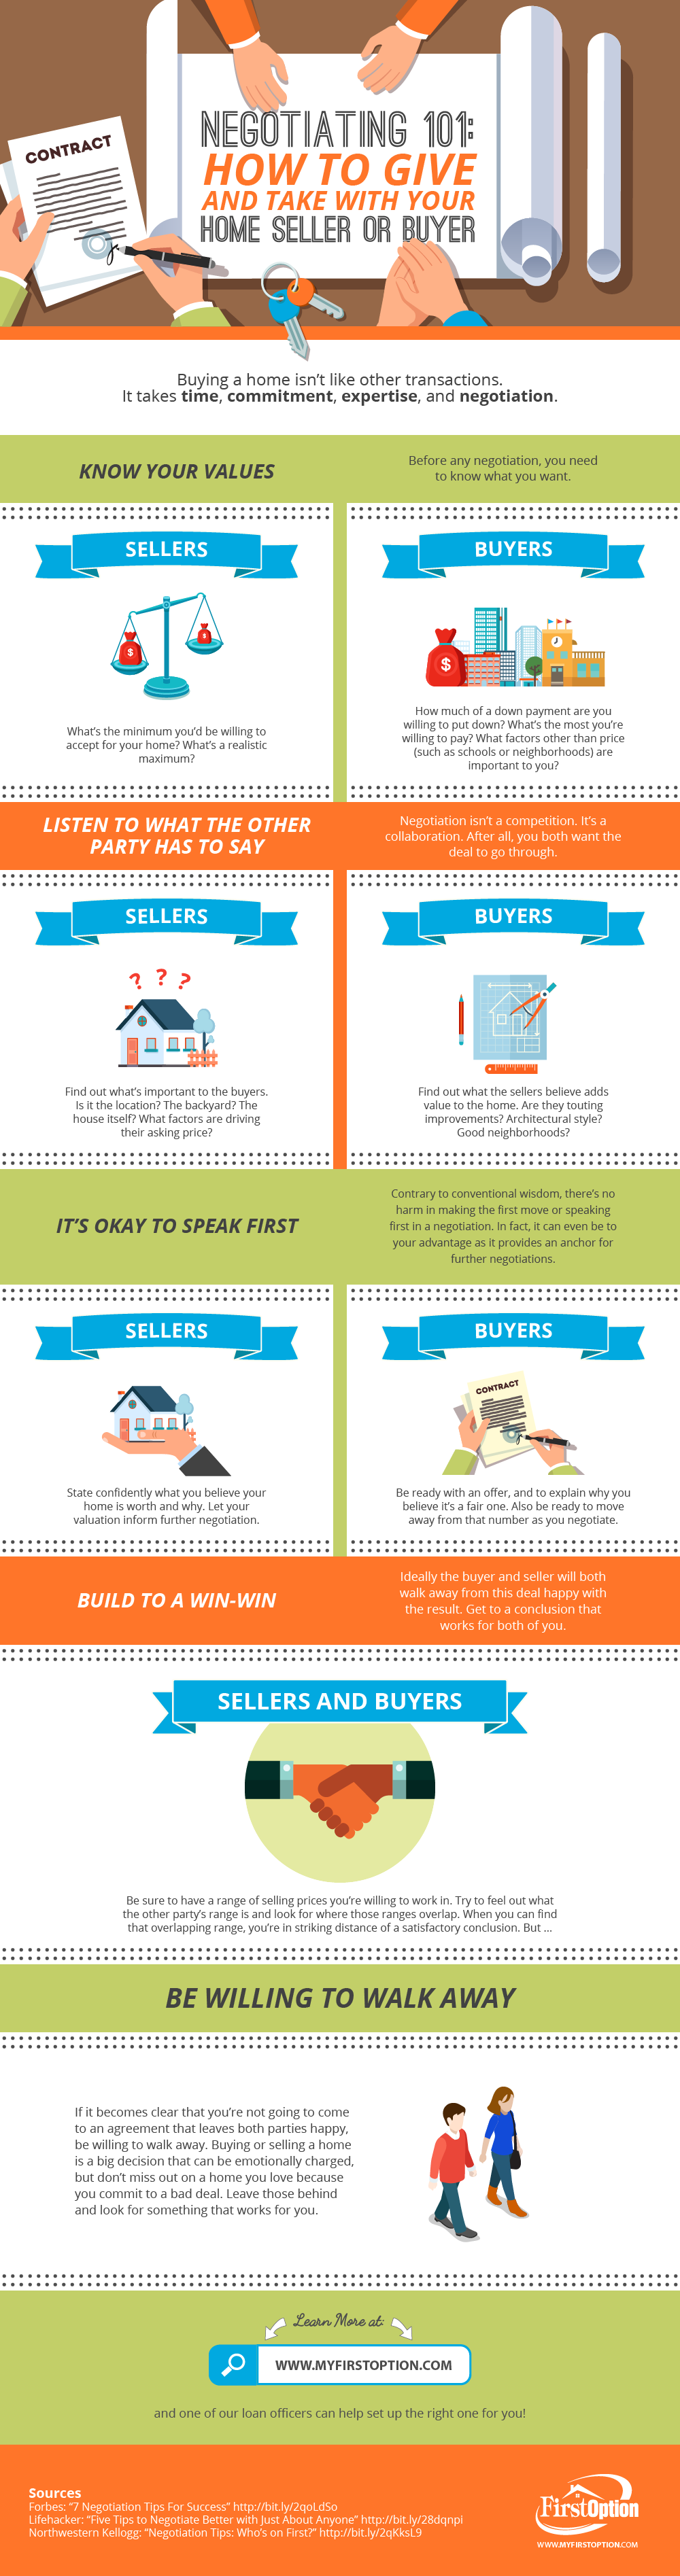 How to Give and Take With Your Home Seller or Buyer